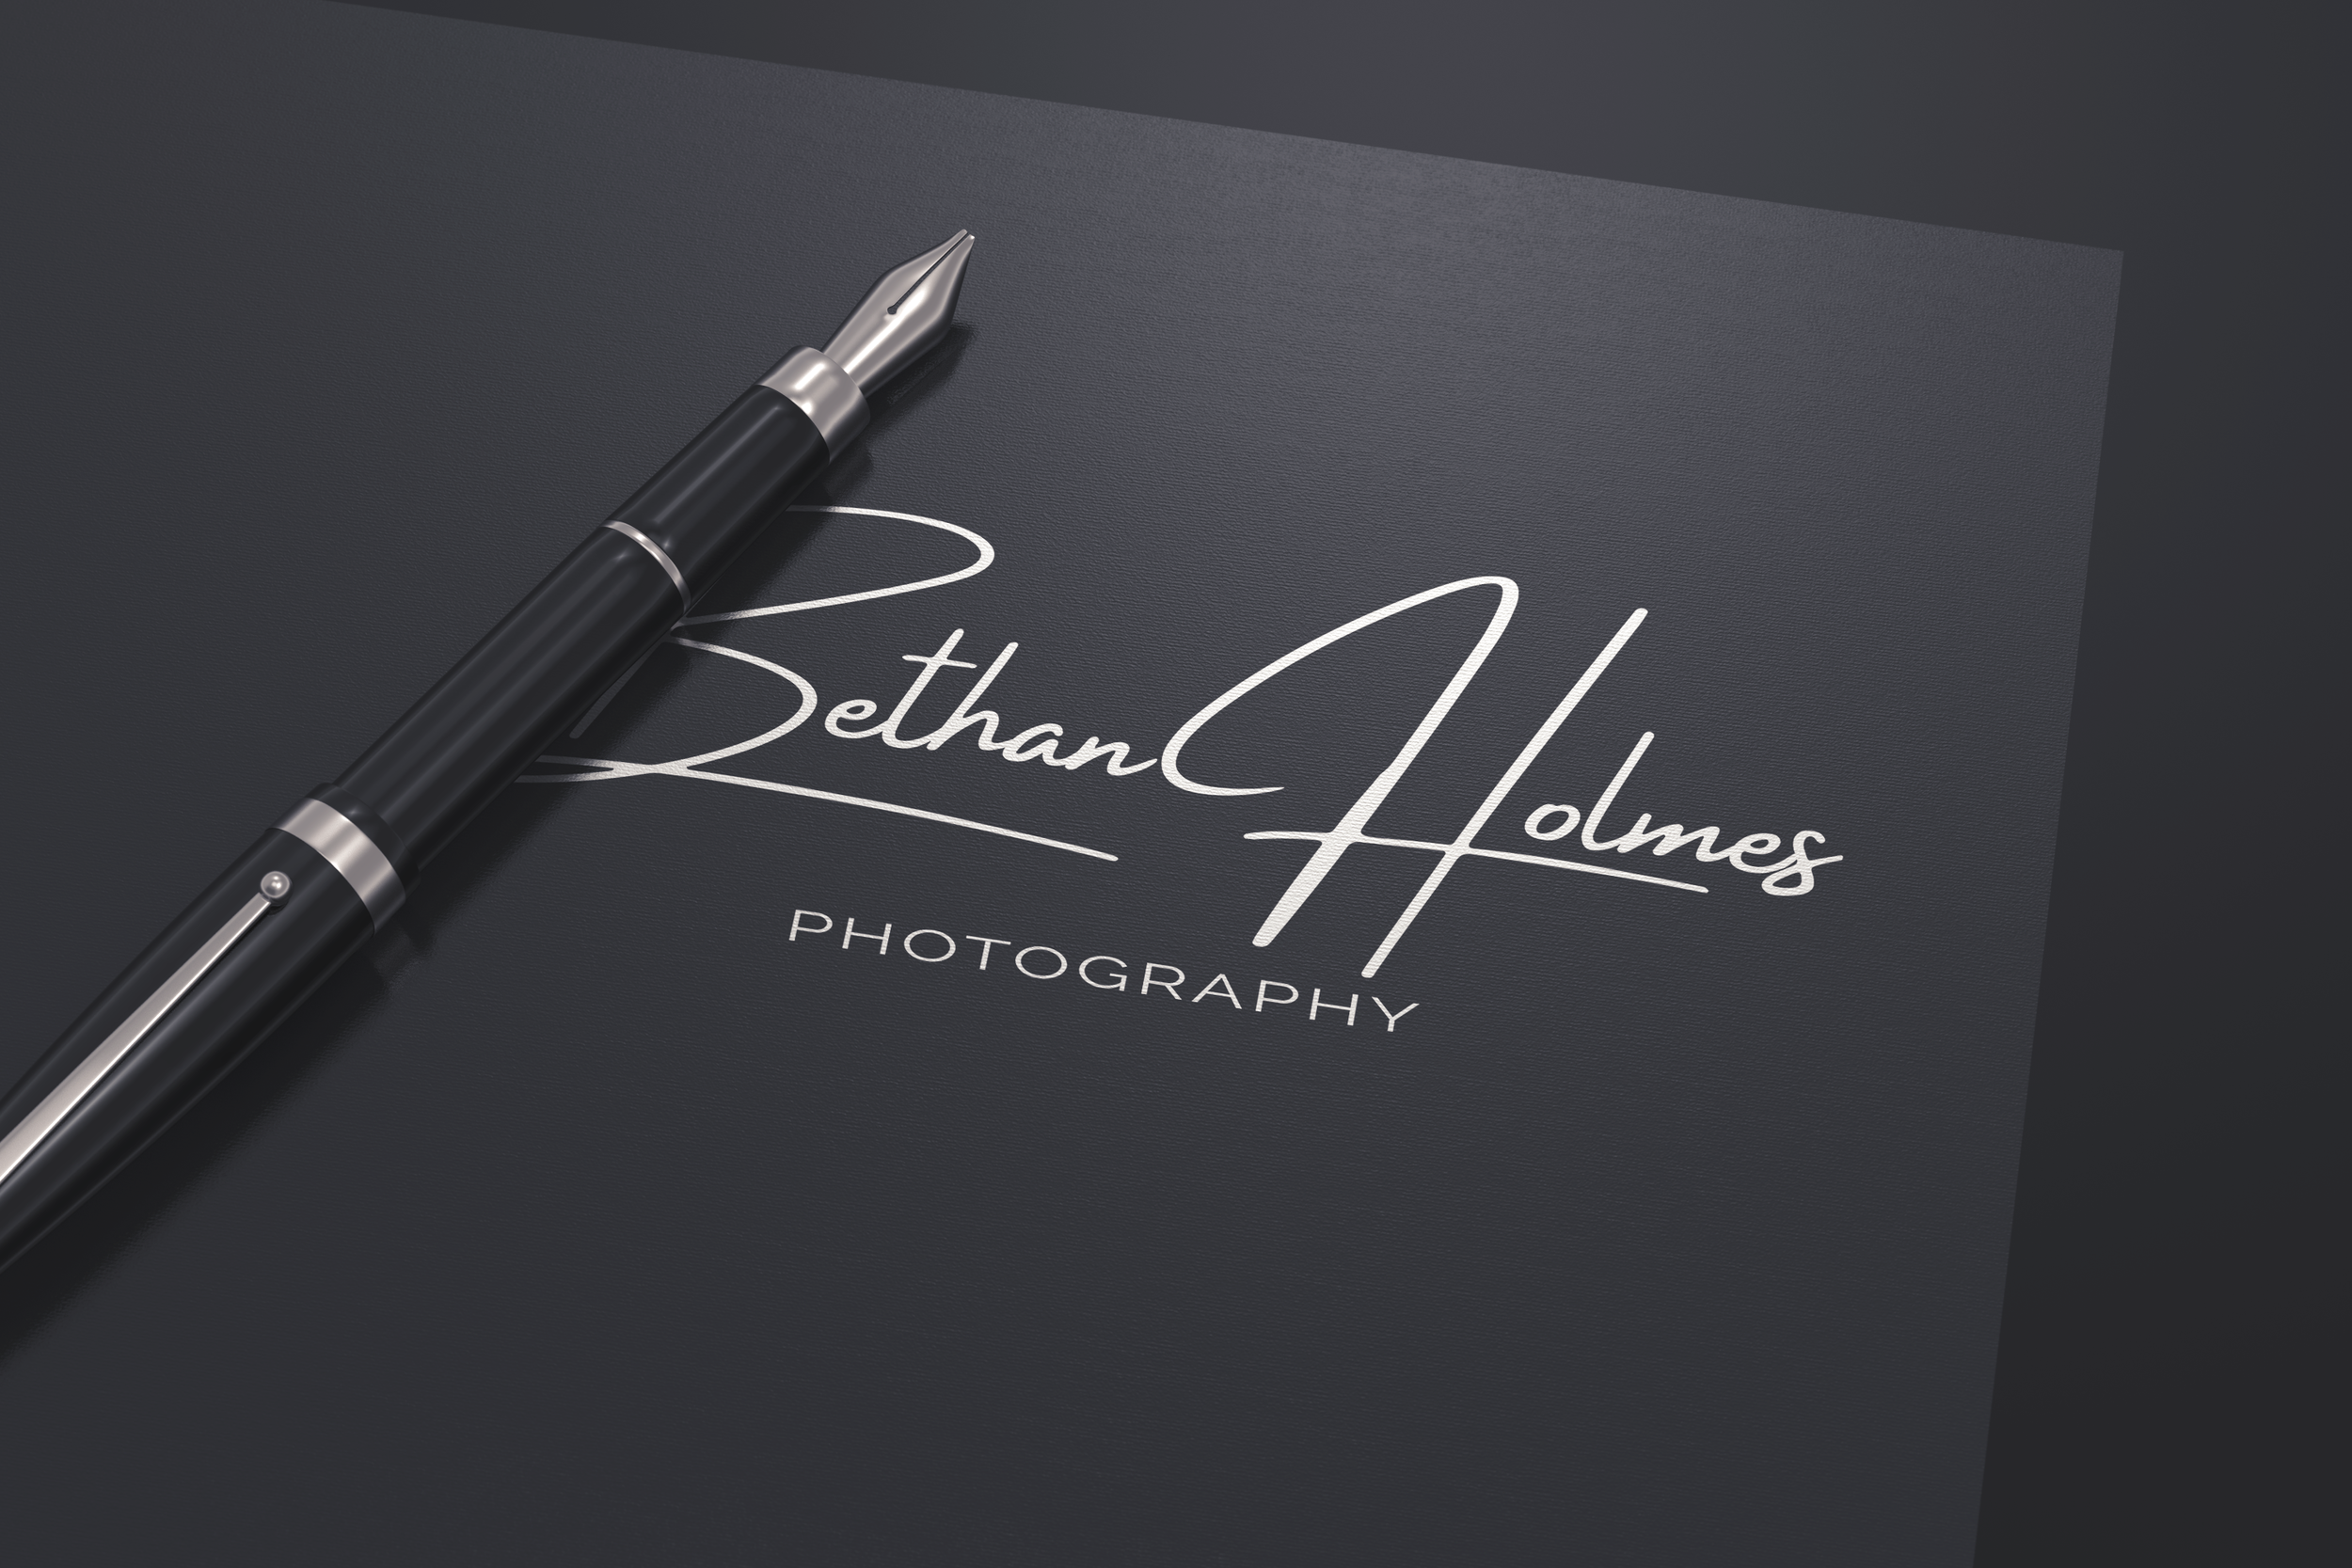 """Beautiful, simple & timeless designs - """"I still get comments on my logo and it has given my photography a more professional feel"""" - Sam Jenkins"""